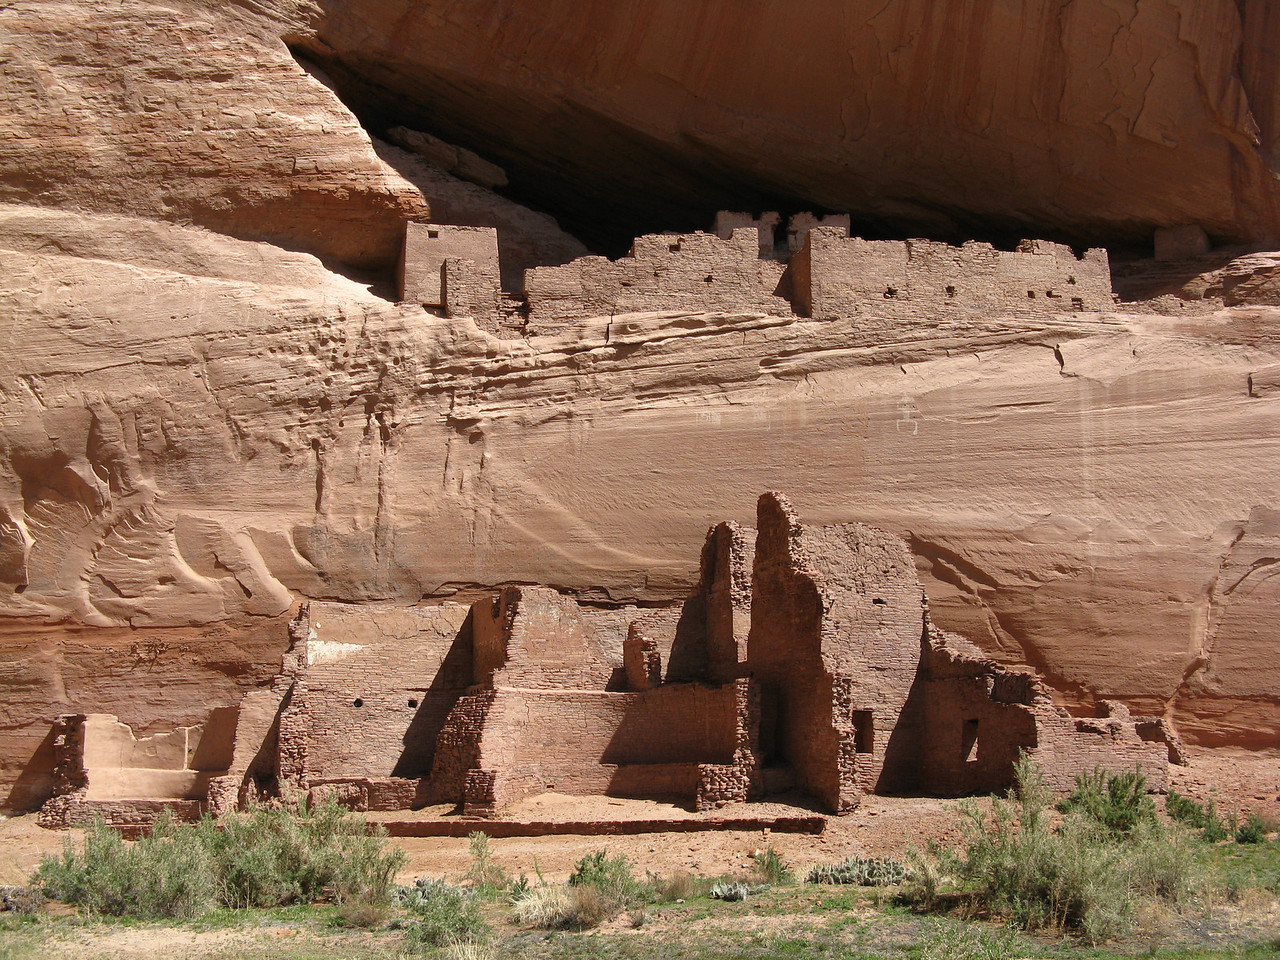 The White House Ruin was occupied by the Anasazi people many centuries ago.   A central white tower on the upper level gives the ruin its name.